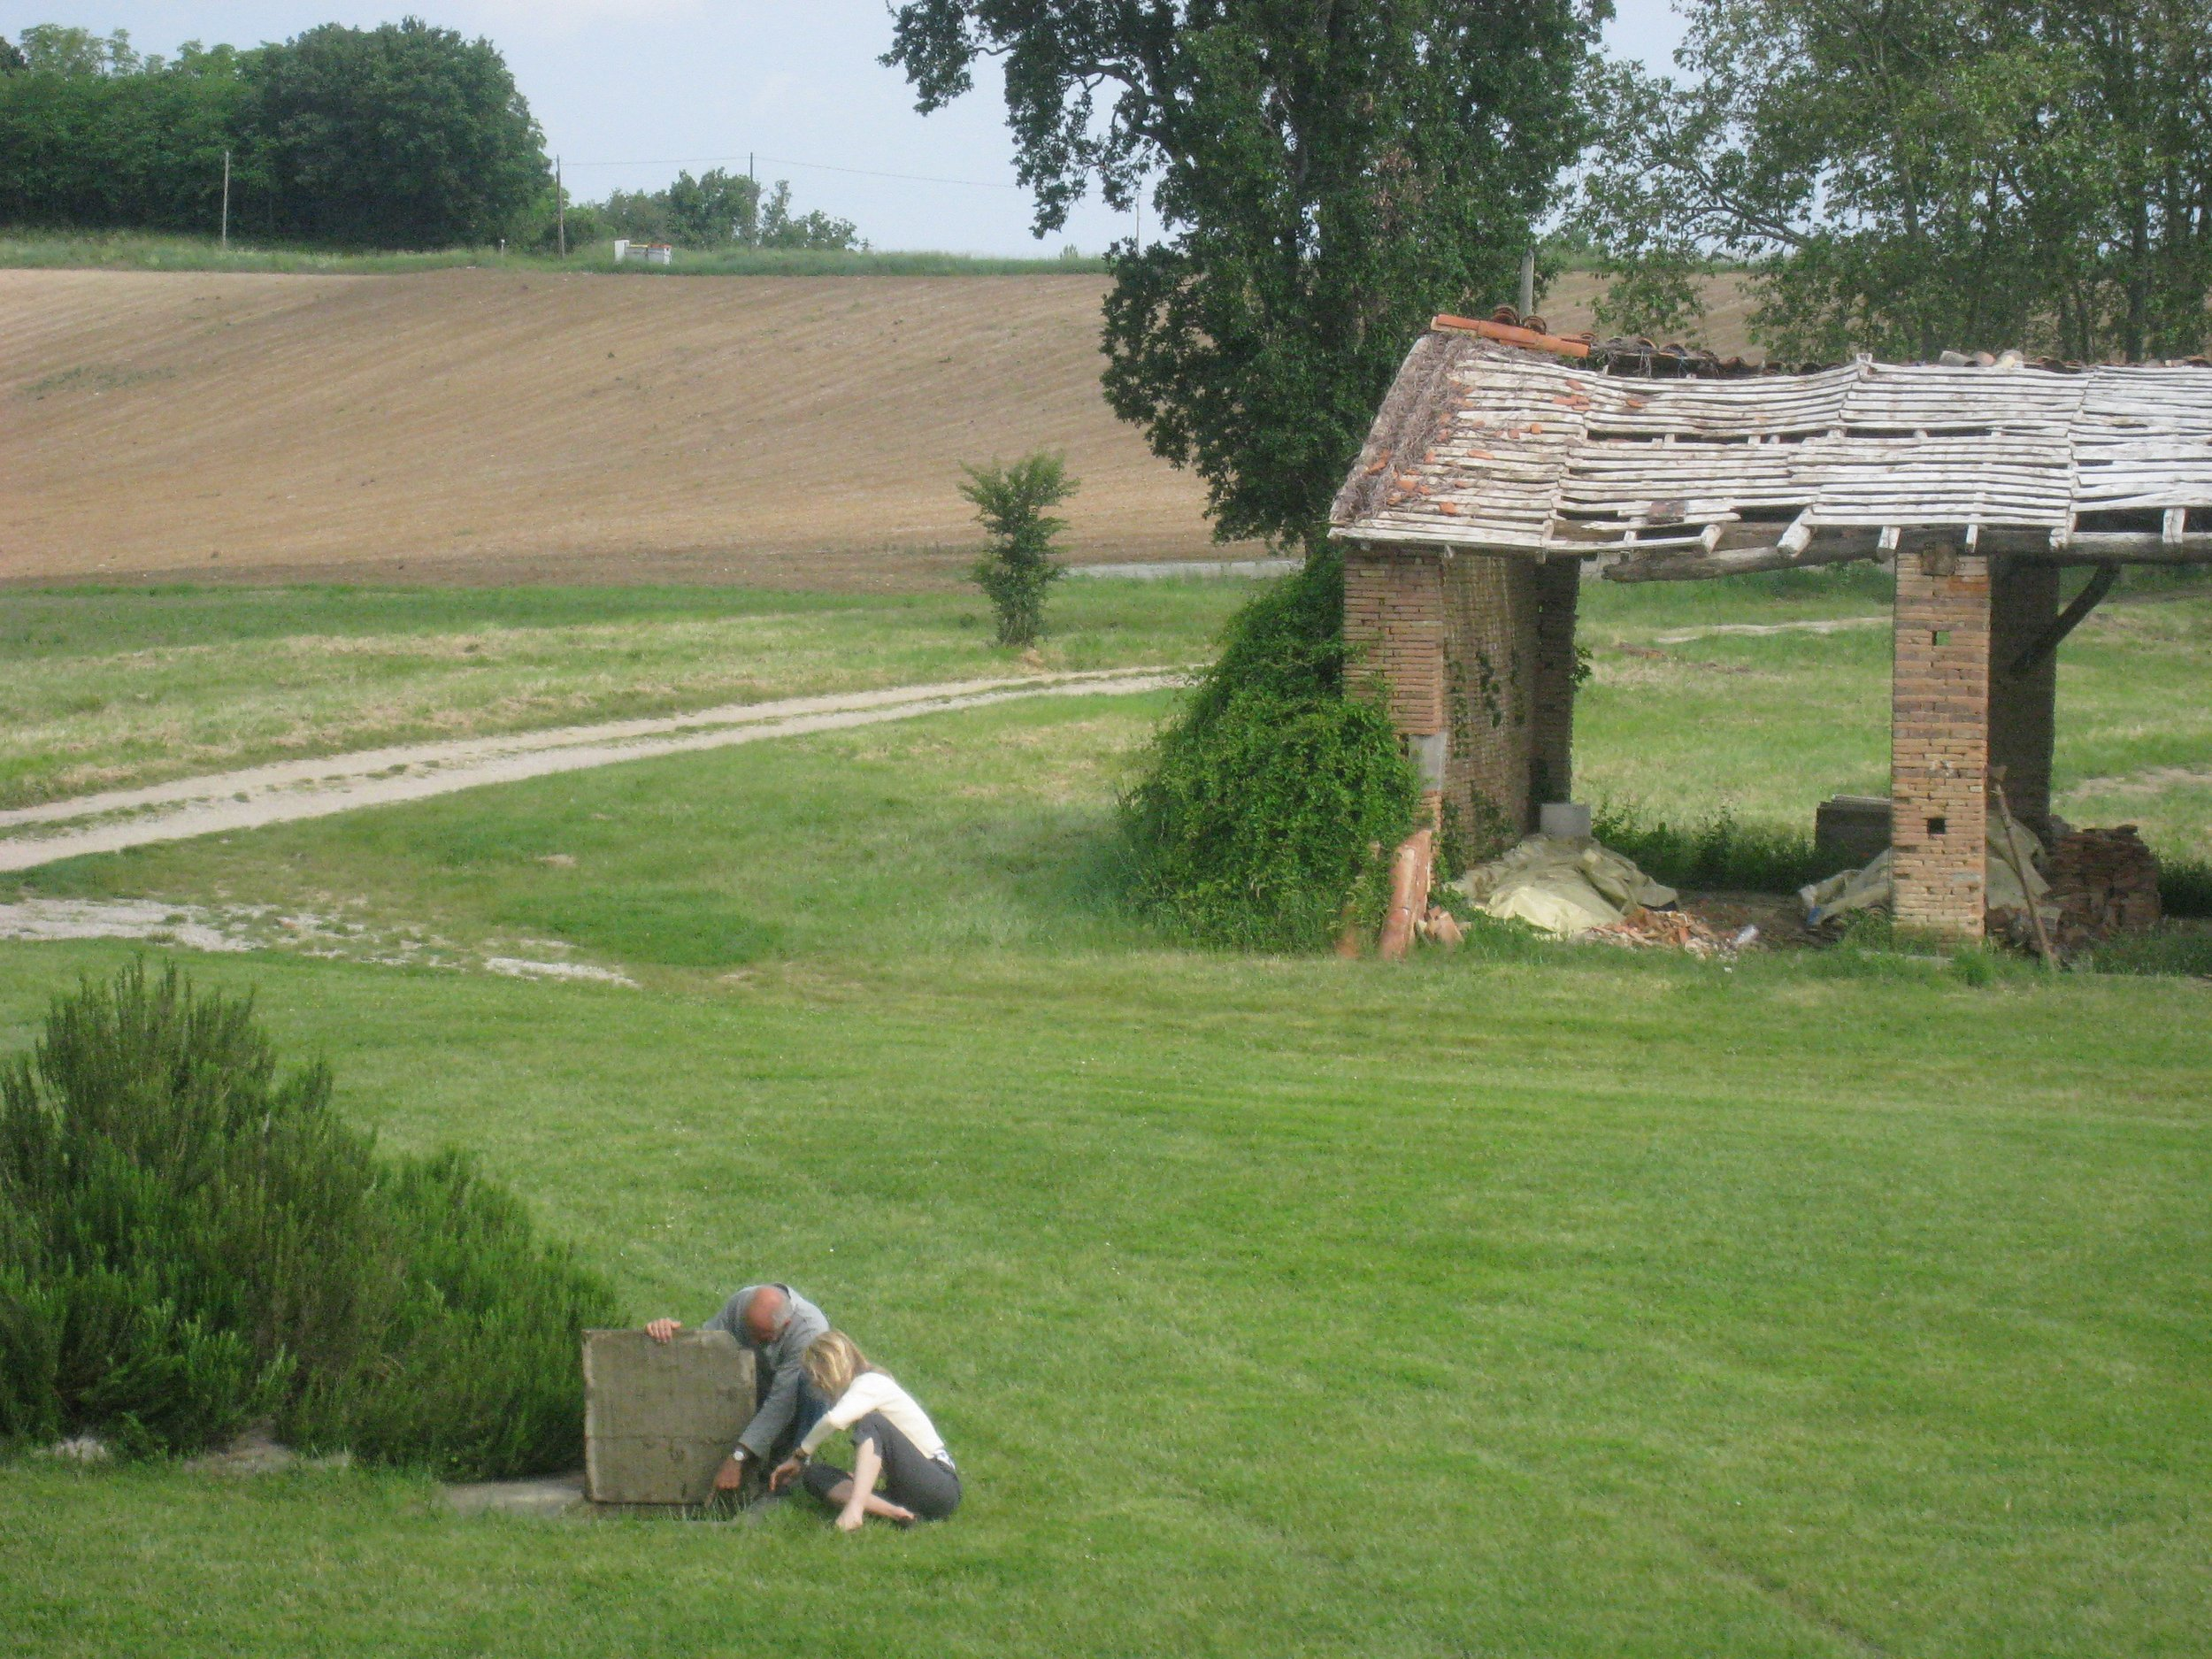 LOOKING FOR A PLACE TO PUT THE 'FOSSE' - THE OLD WELL & DESTROYED BARNS BEHIND